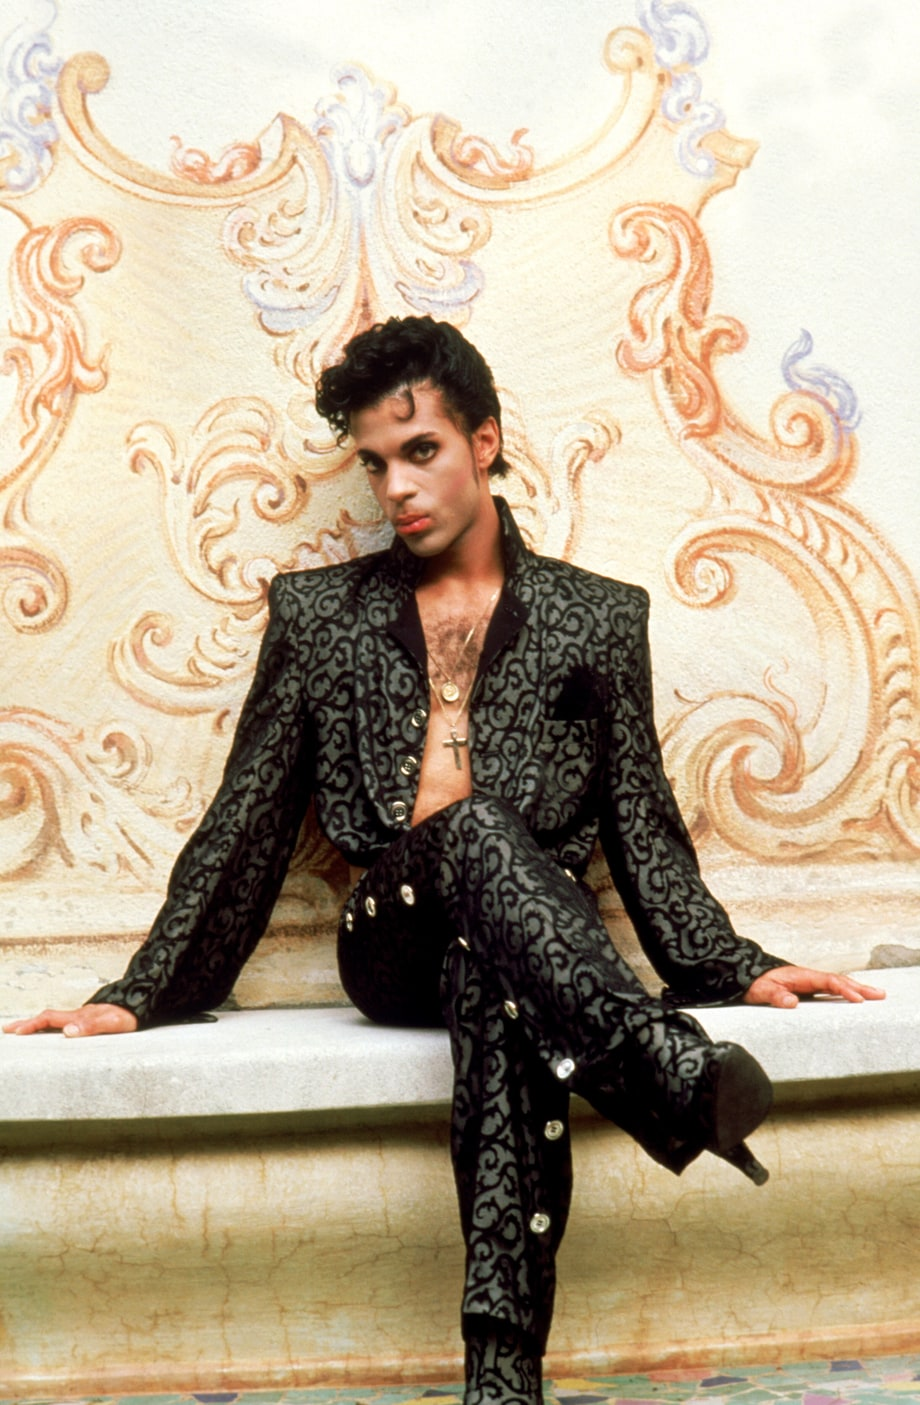 Prince and His Fashion Revolution